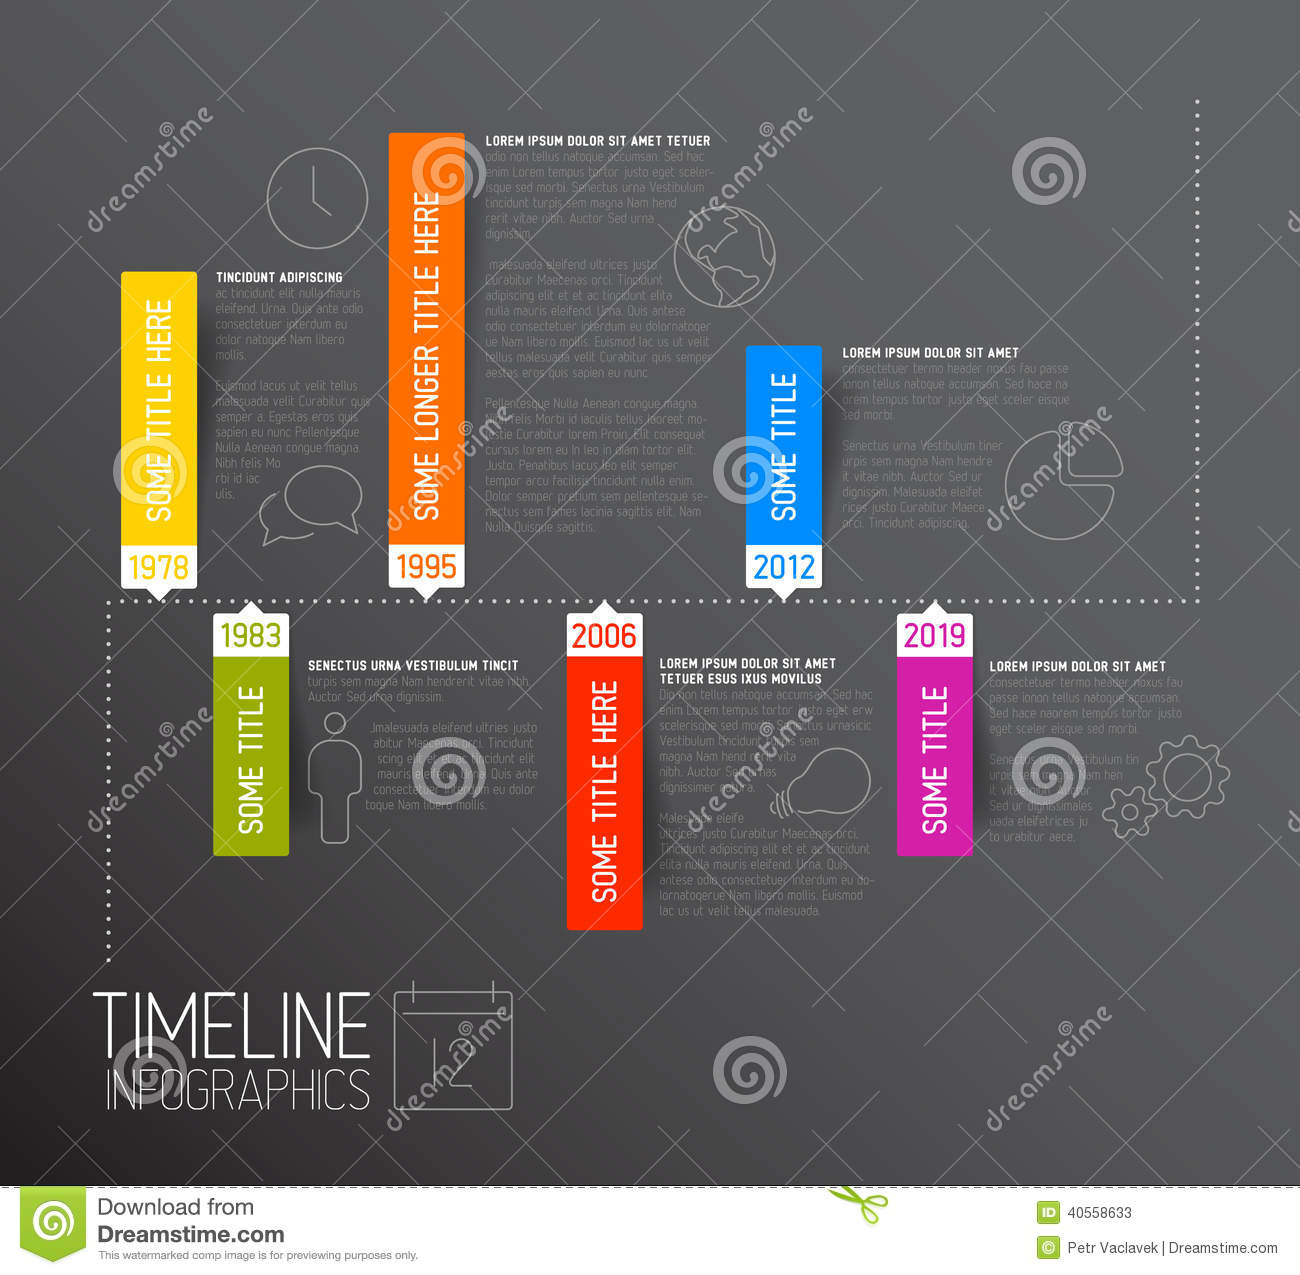 how to see label colors on timeline